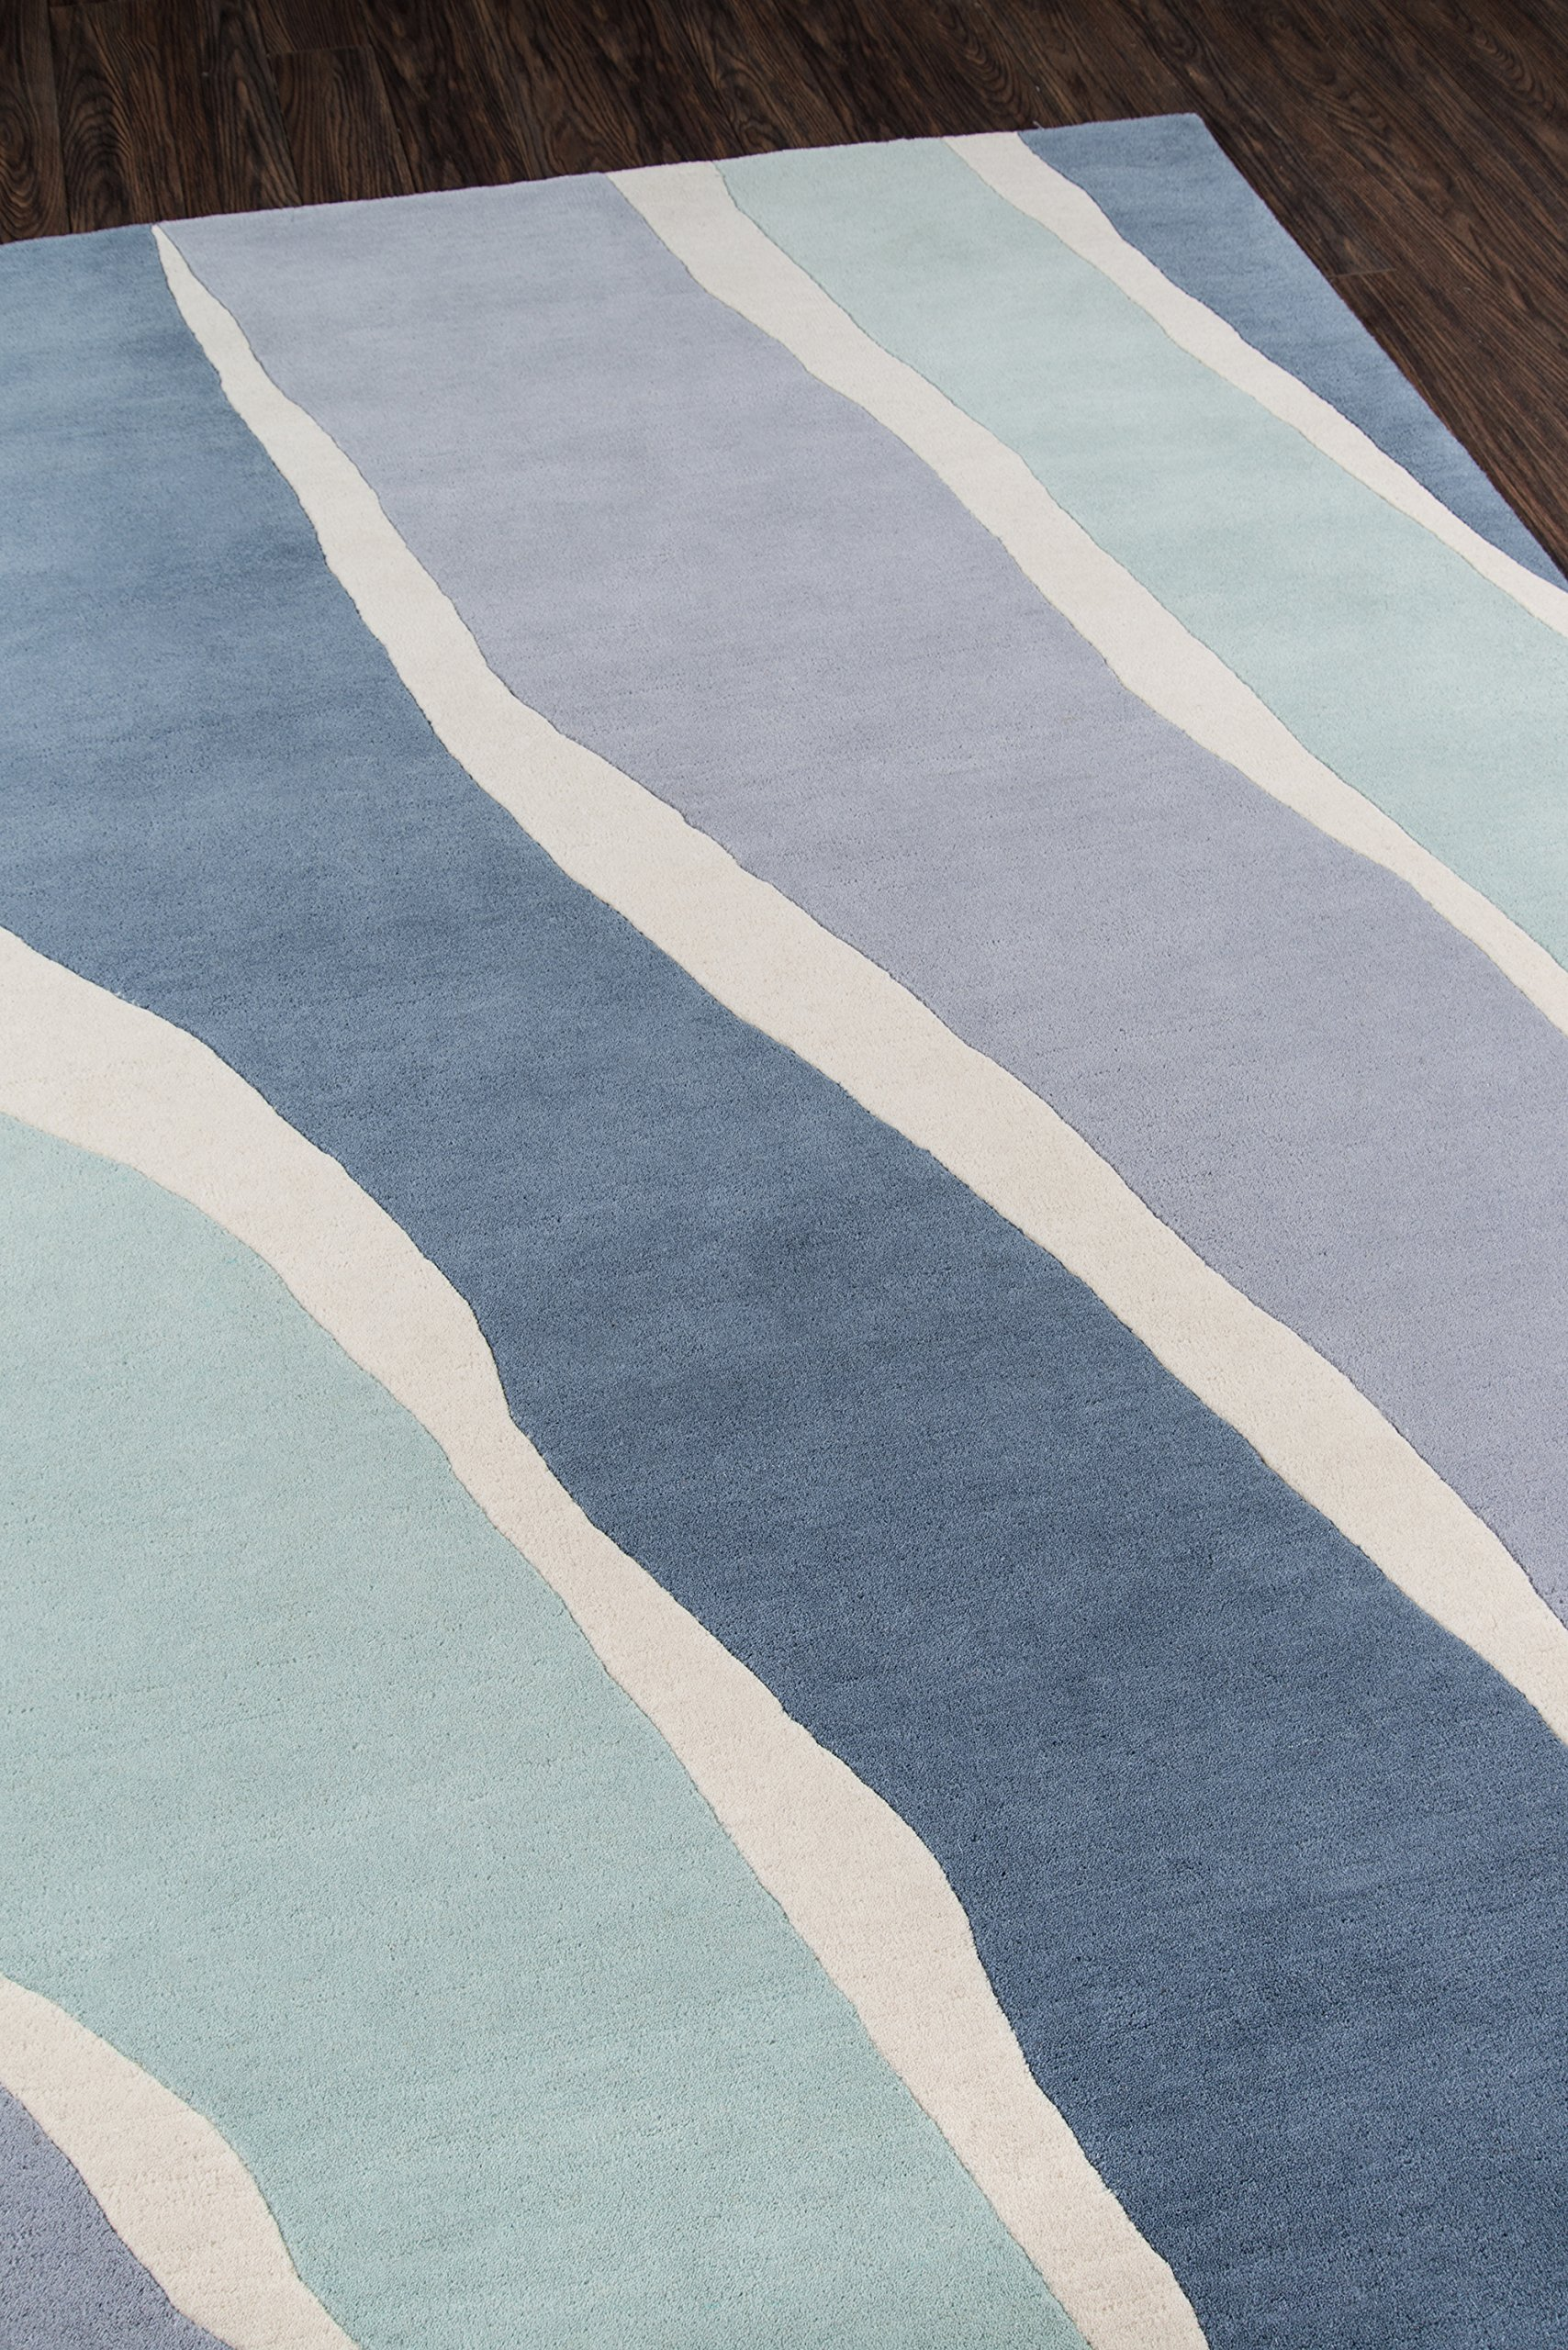 """Novogratz Delmar Collection Sorbet Area Rug, 8'0"""" x 10'0"""", Blue - CHIC DESIGN: The graphic look of this modern area rug adds contemporary flair to floors throughout the home. UNPARALLELED STYLE: Captured in a spectrum of vivid shades, polka dots, chevron stripes, and triangulated patterns and checkerboard prints. EXPERT CRAFTSMANSHIP: Hand tufted from natural wool fibers for added depth and detail. - living-room-soft-furnishings, living-room, area-rugs - A1f4Omu4vjL -"""